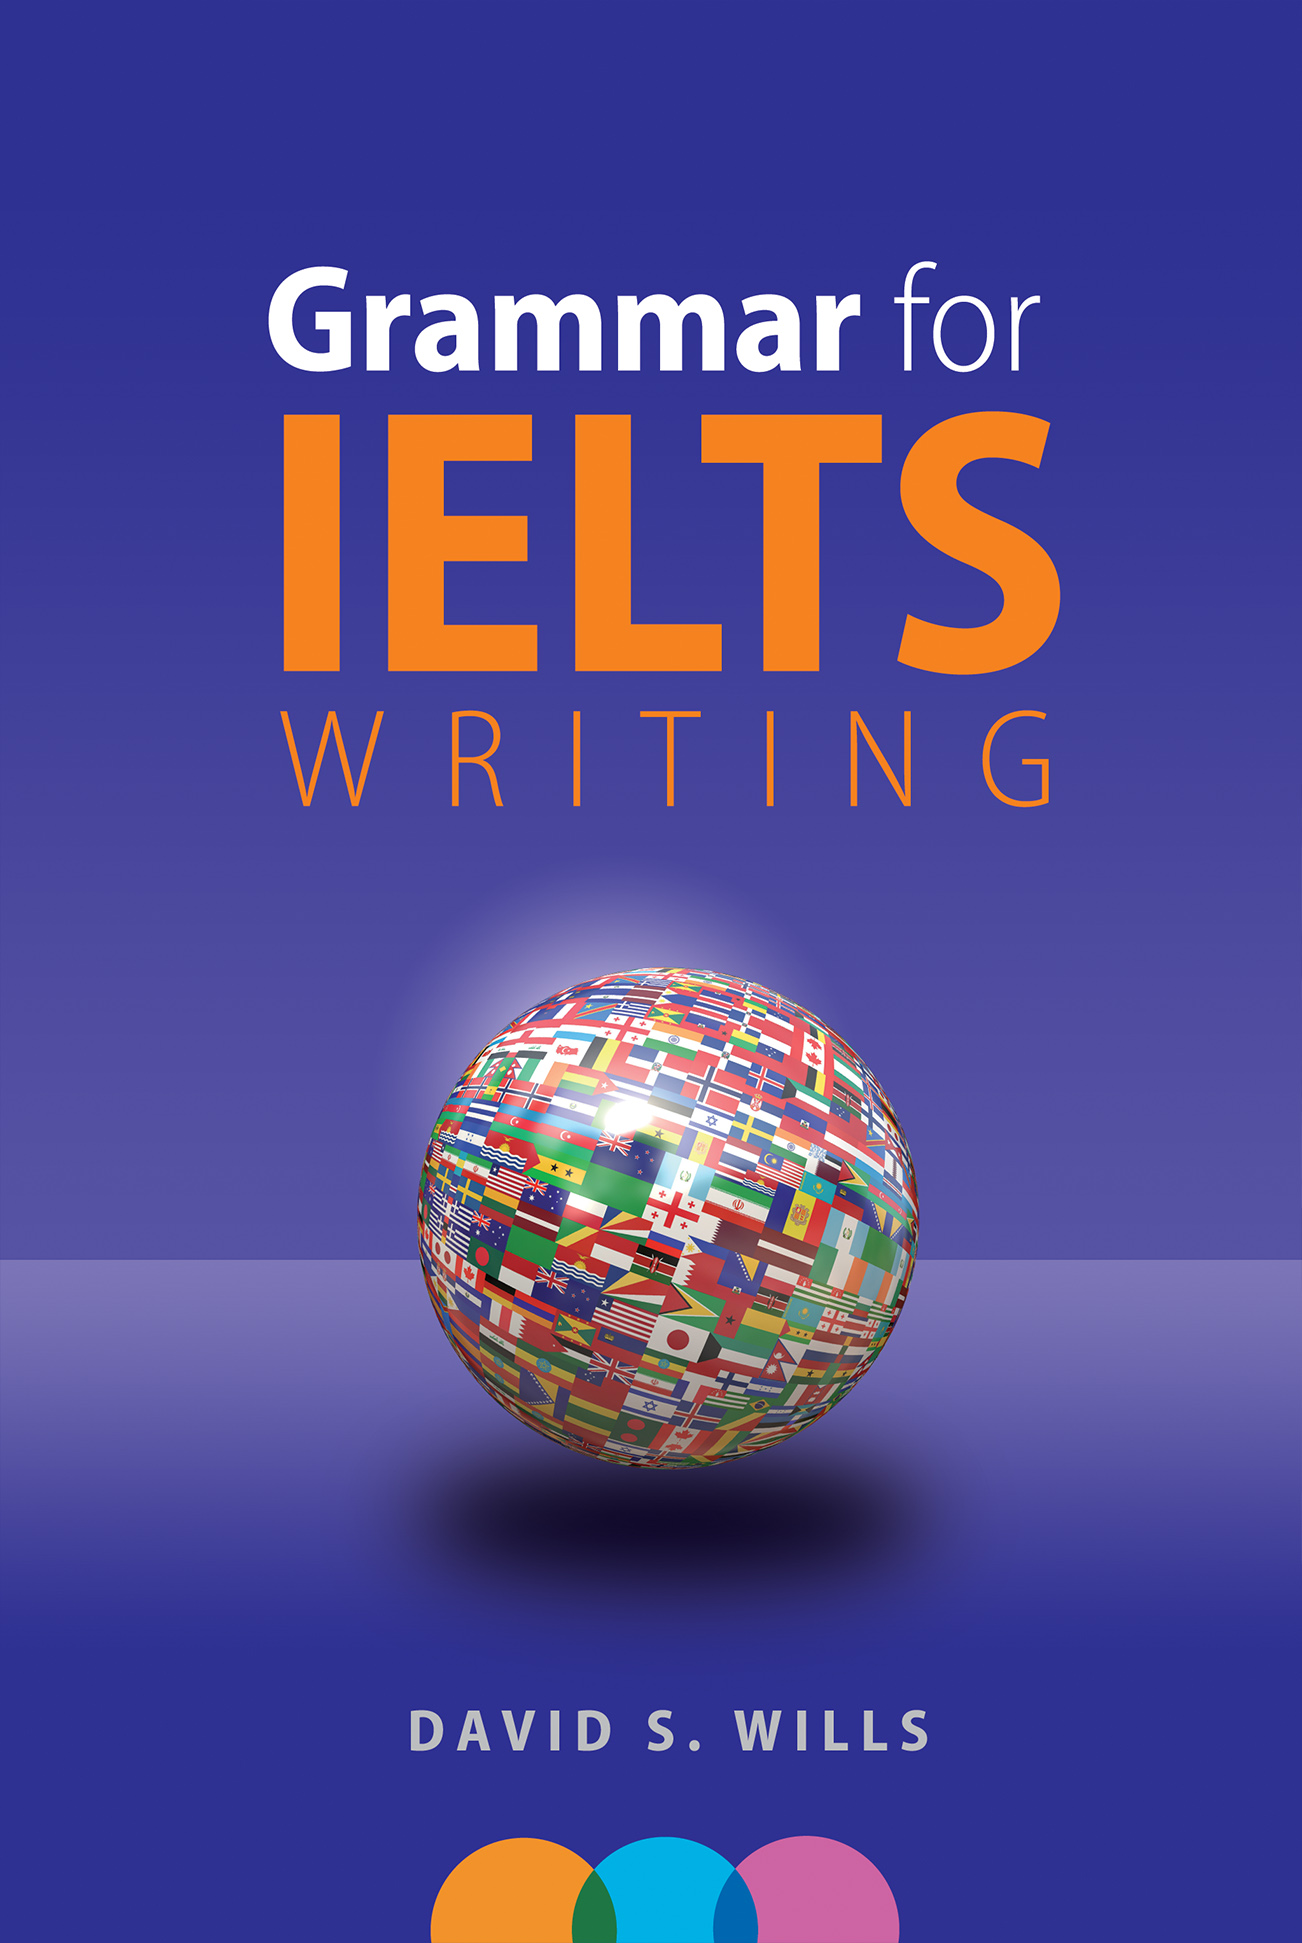 new cover Small - IELTS Writing: Should I Write 4 or 5 Paragraphs?